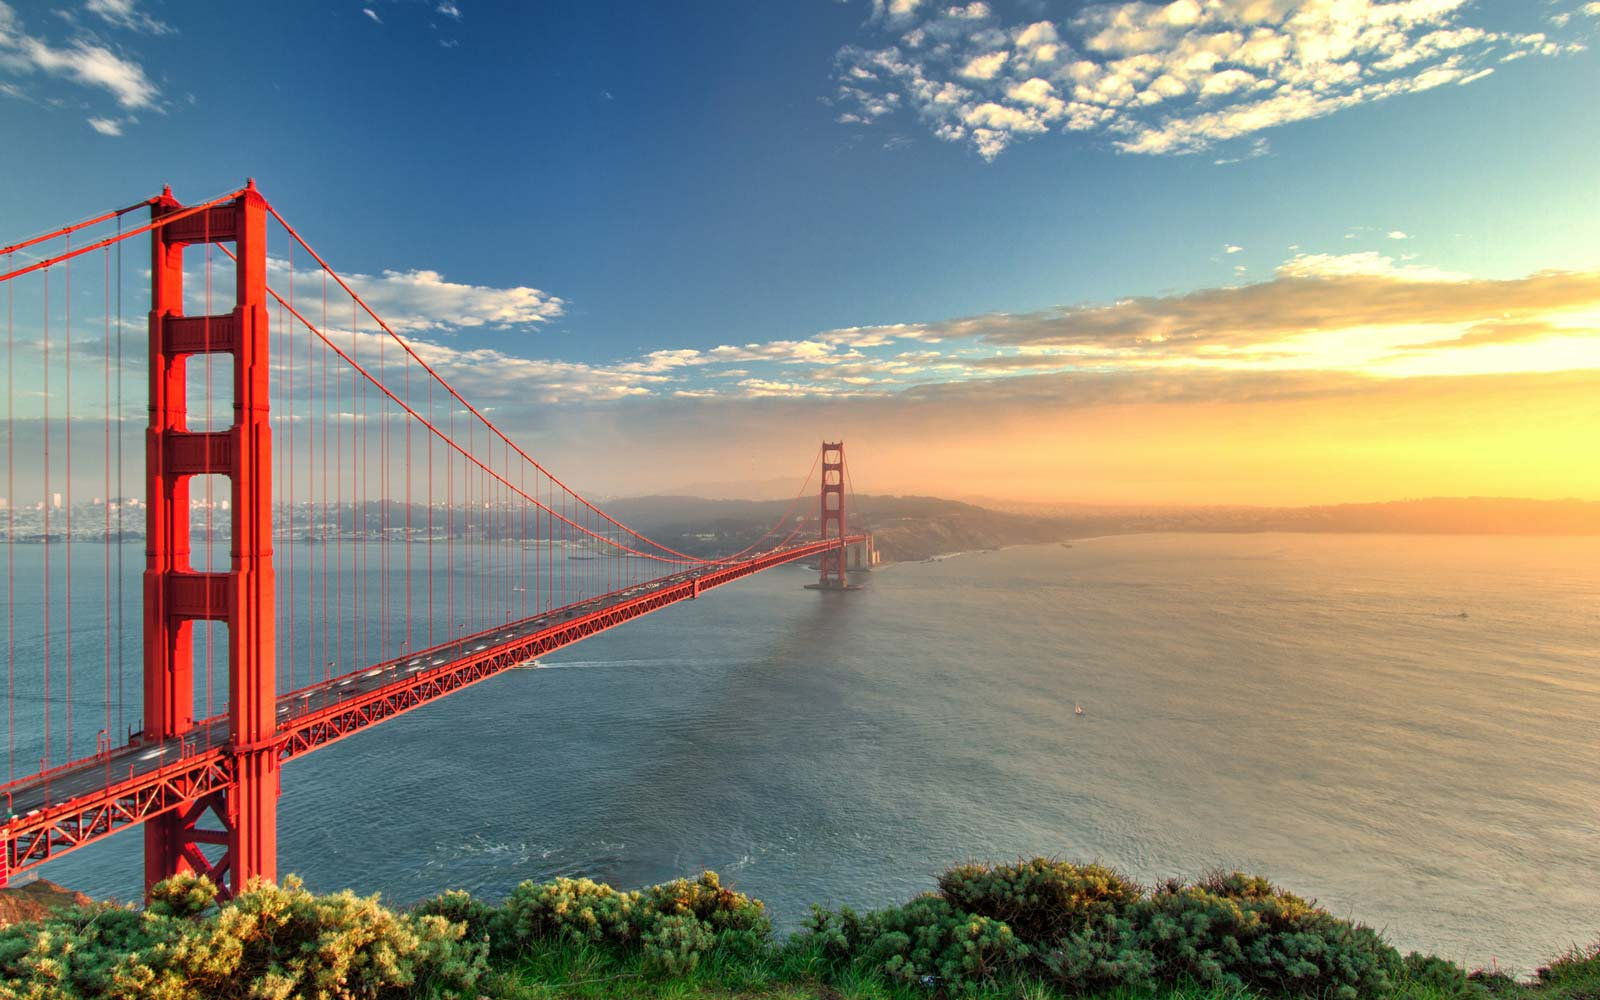 The Golden Gate Bridge during sunset in San Francisco, California.